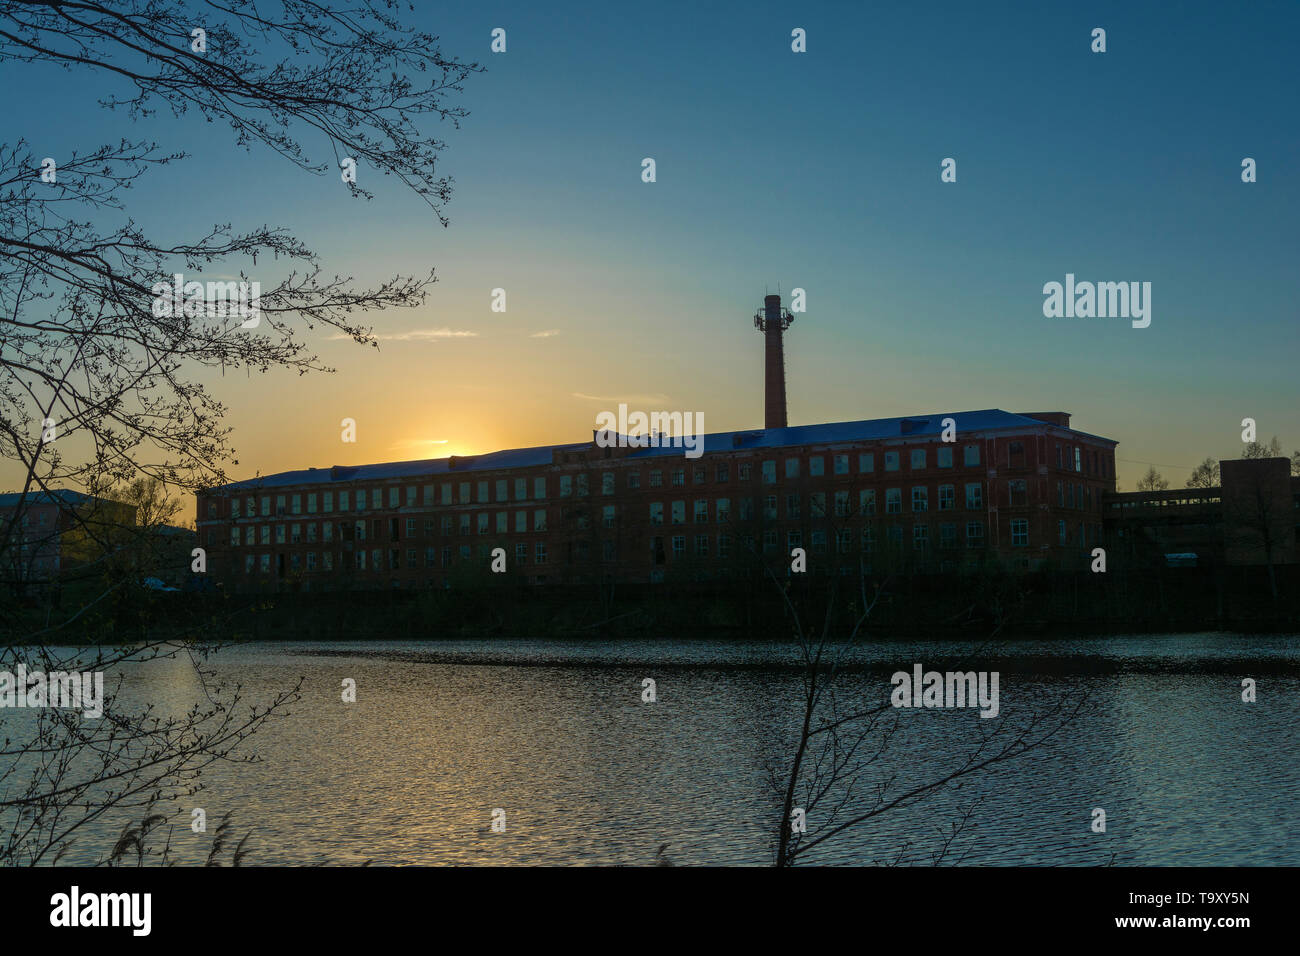 Beautiful sunset on the Knazal lake on the background of a large old weaving factory, the city of Yuzha, Ivanovo region, Russia. - Stock Image